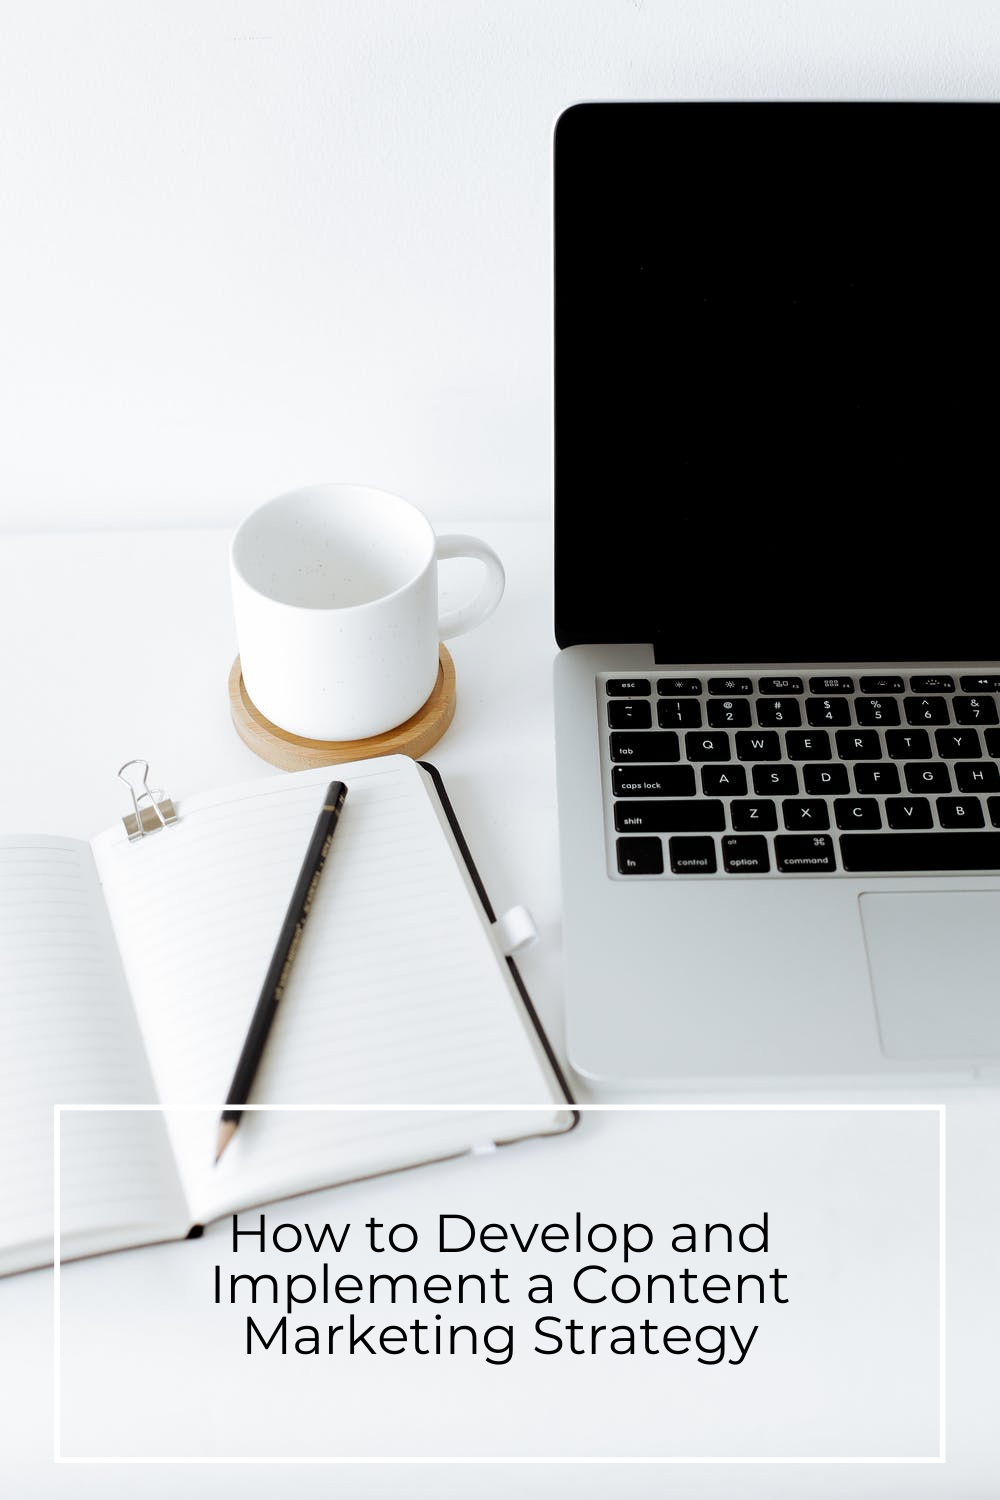 Quick Steps to Develop and Implement a Content Marketing Strategy